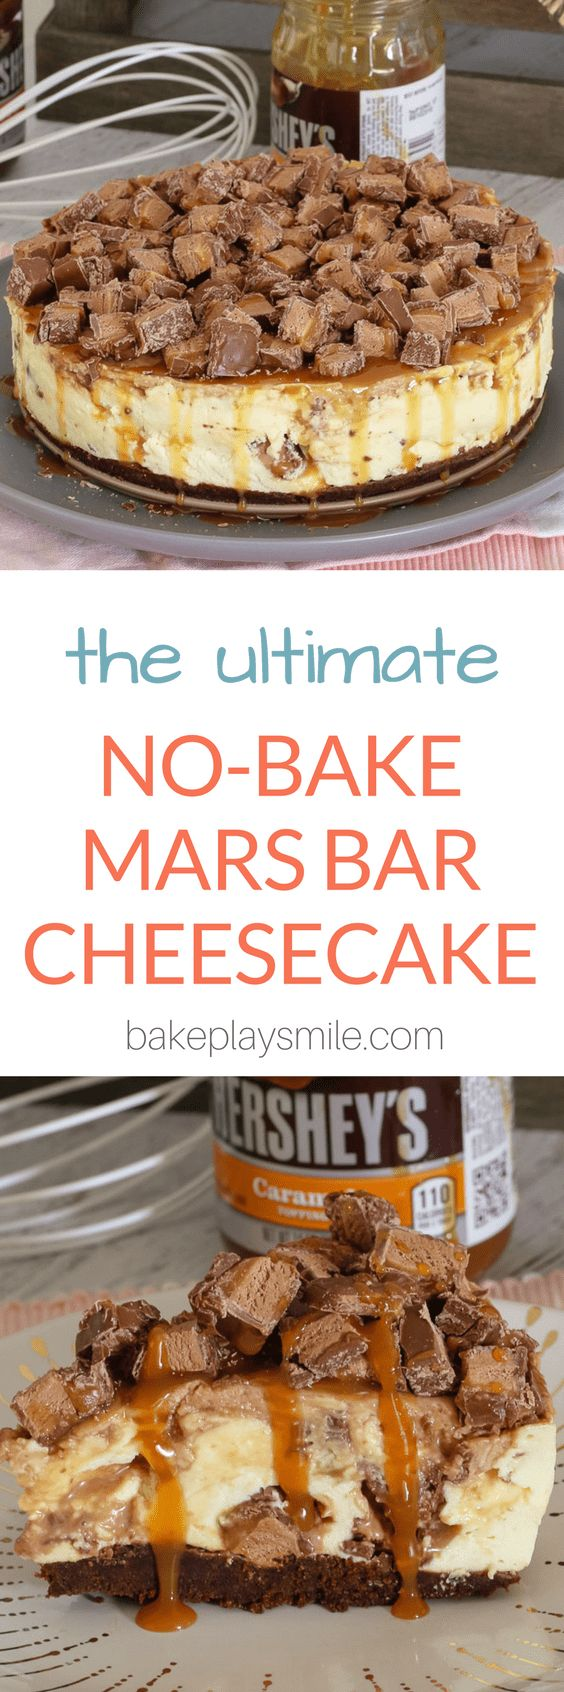 The ULTIMATE NO-BAKE MARS BAR CHEESECAKE... packed full of Mars Bars, chocolate sauce and caramel sauce! Talk about delicious!  #mars #bar #nobake #cheesecake #best #caramel #chocolate #dessert #thermomix #conventional #easy #christmas #celebration #cheesecake